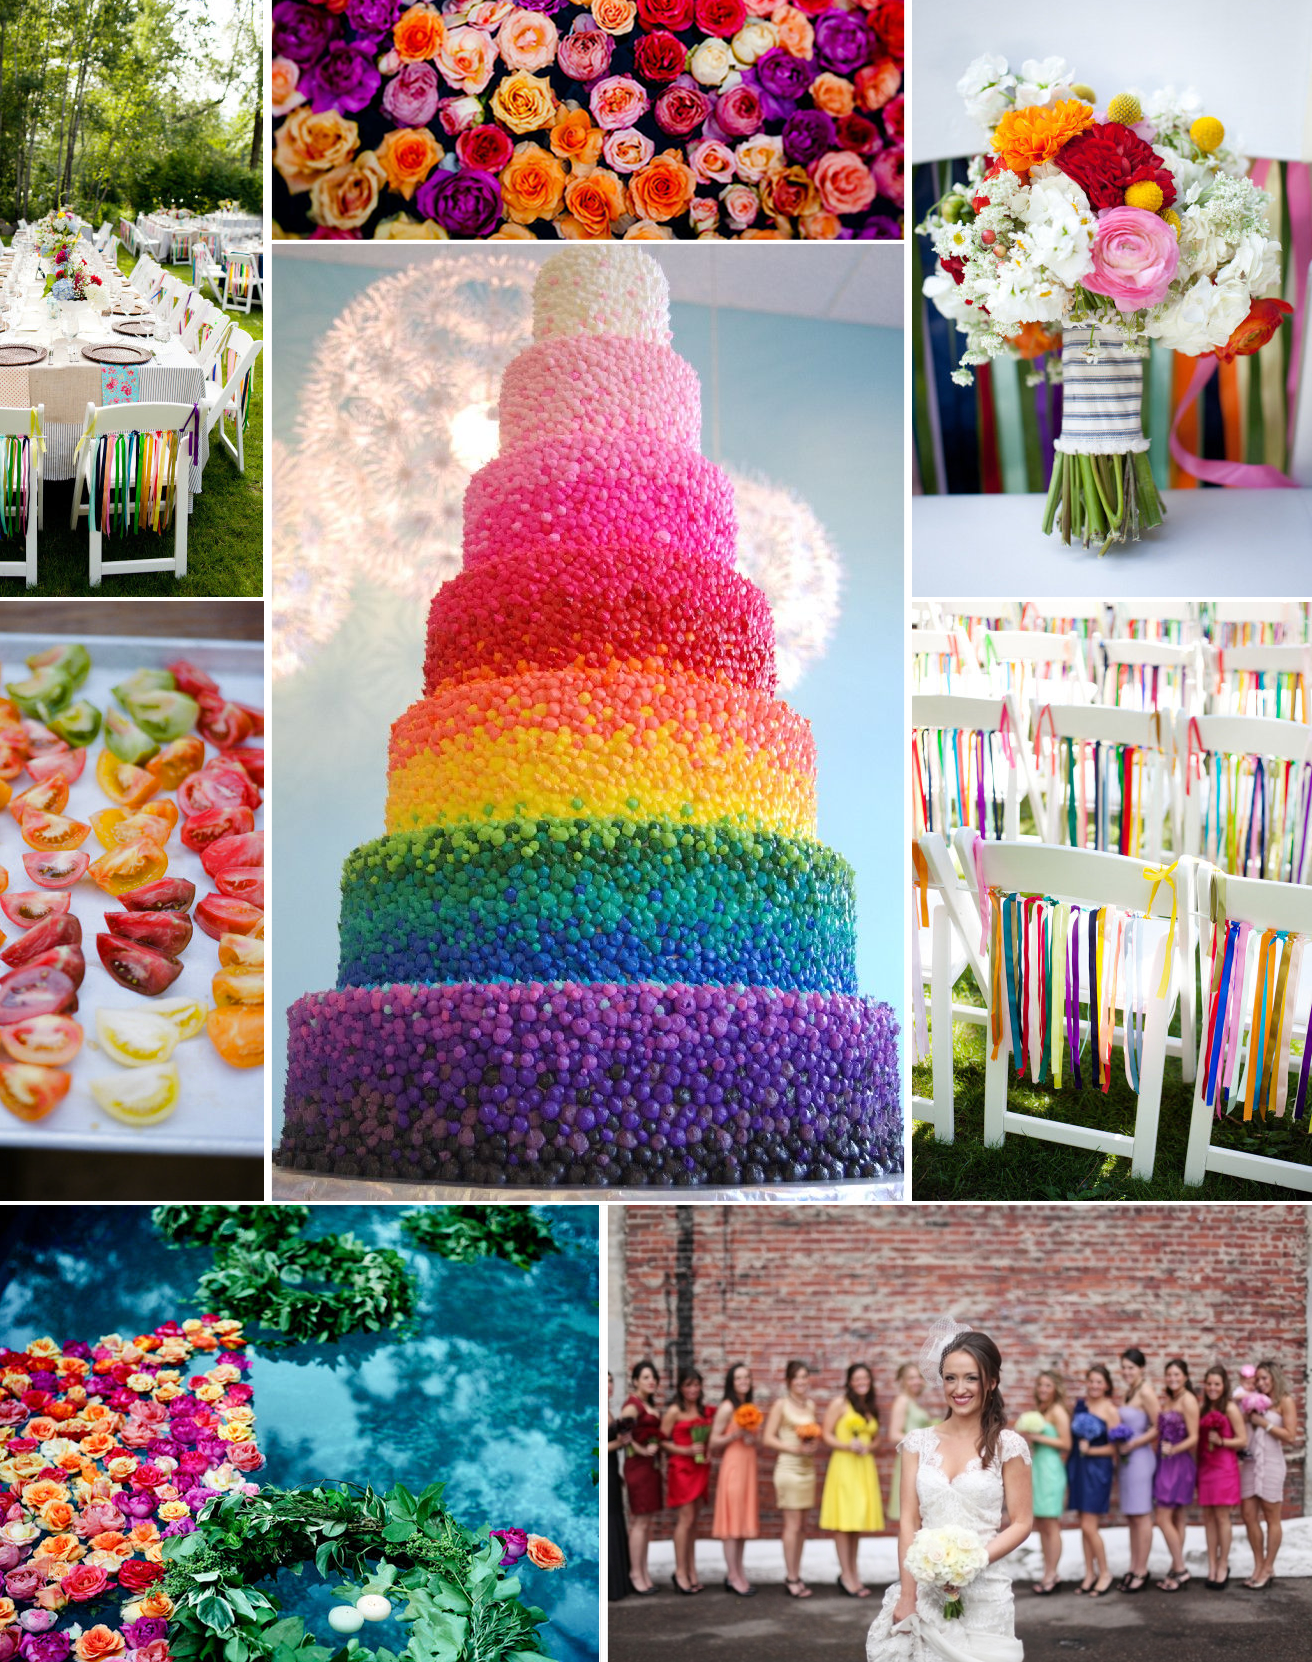 Wedding-color-inspiration-rainbow-bridesmaids-wedding-cake-decor.original